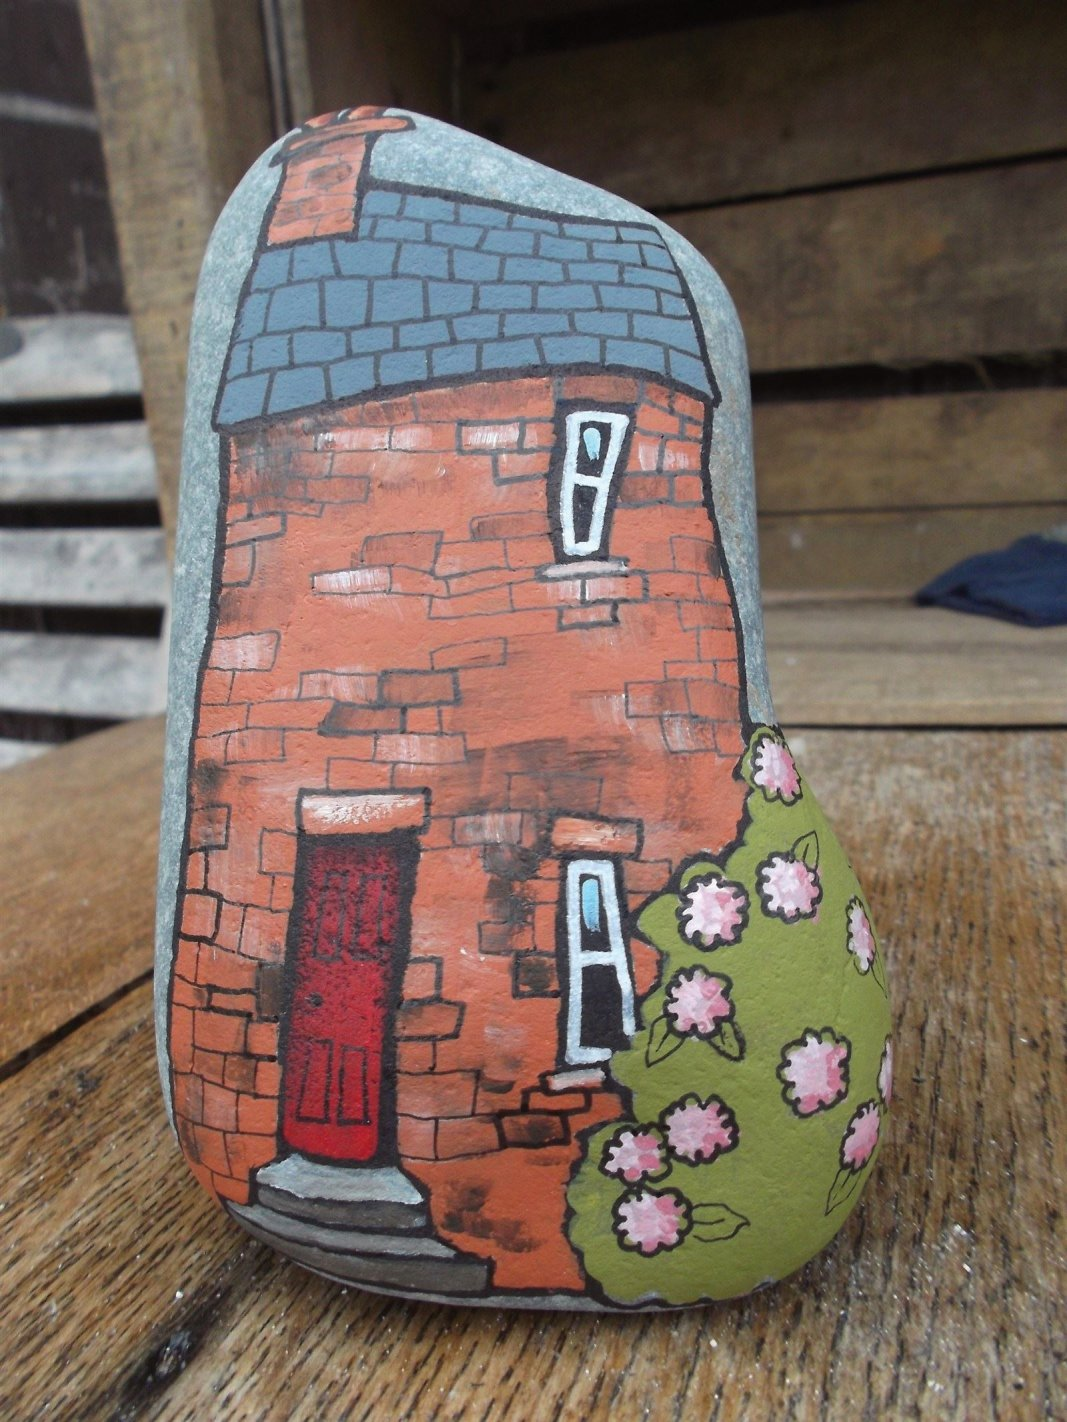 The painted pebbles are proving very popular at the moment